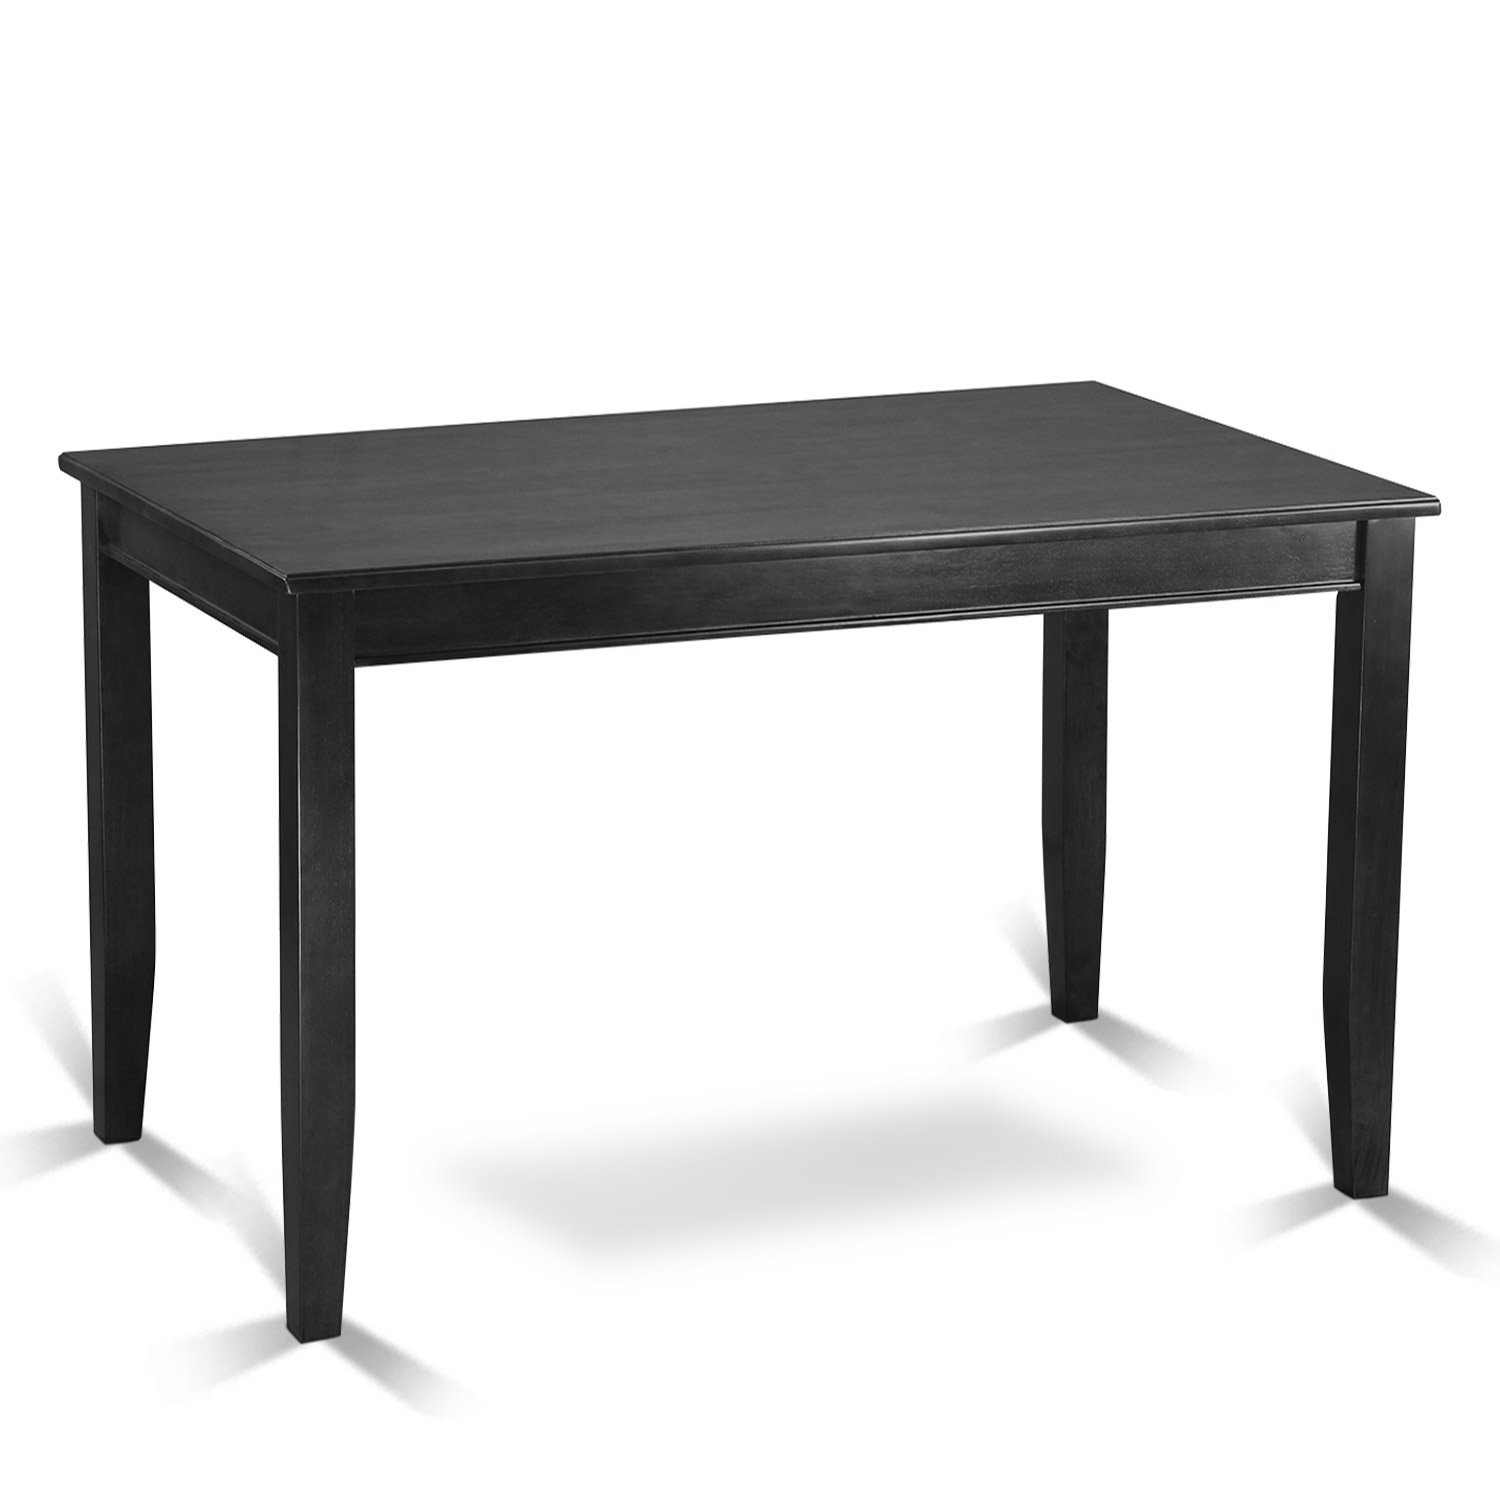 East West Furniture BUT-BLK-T Counter Height Rectangular Table, 30-Inch by 48-Inch, Black Finish by East West Furniture (Image #1)